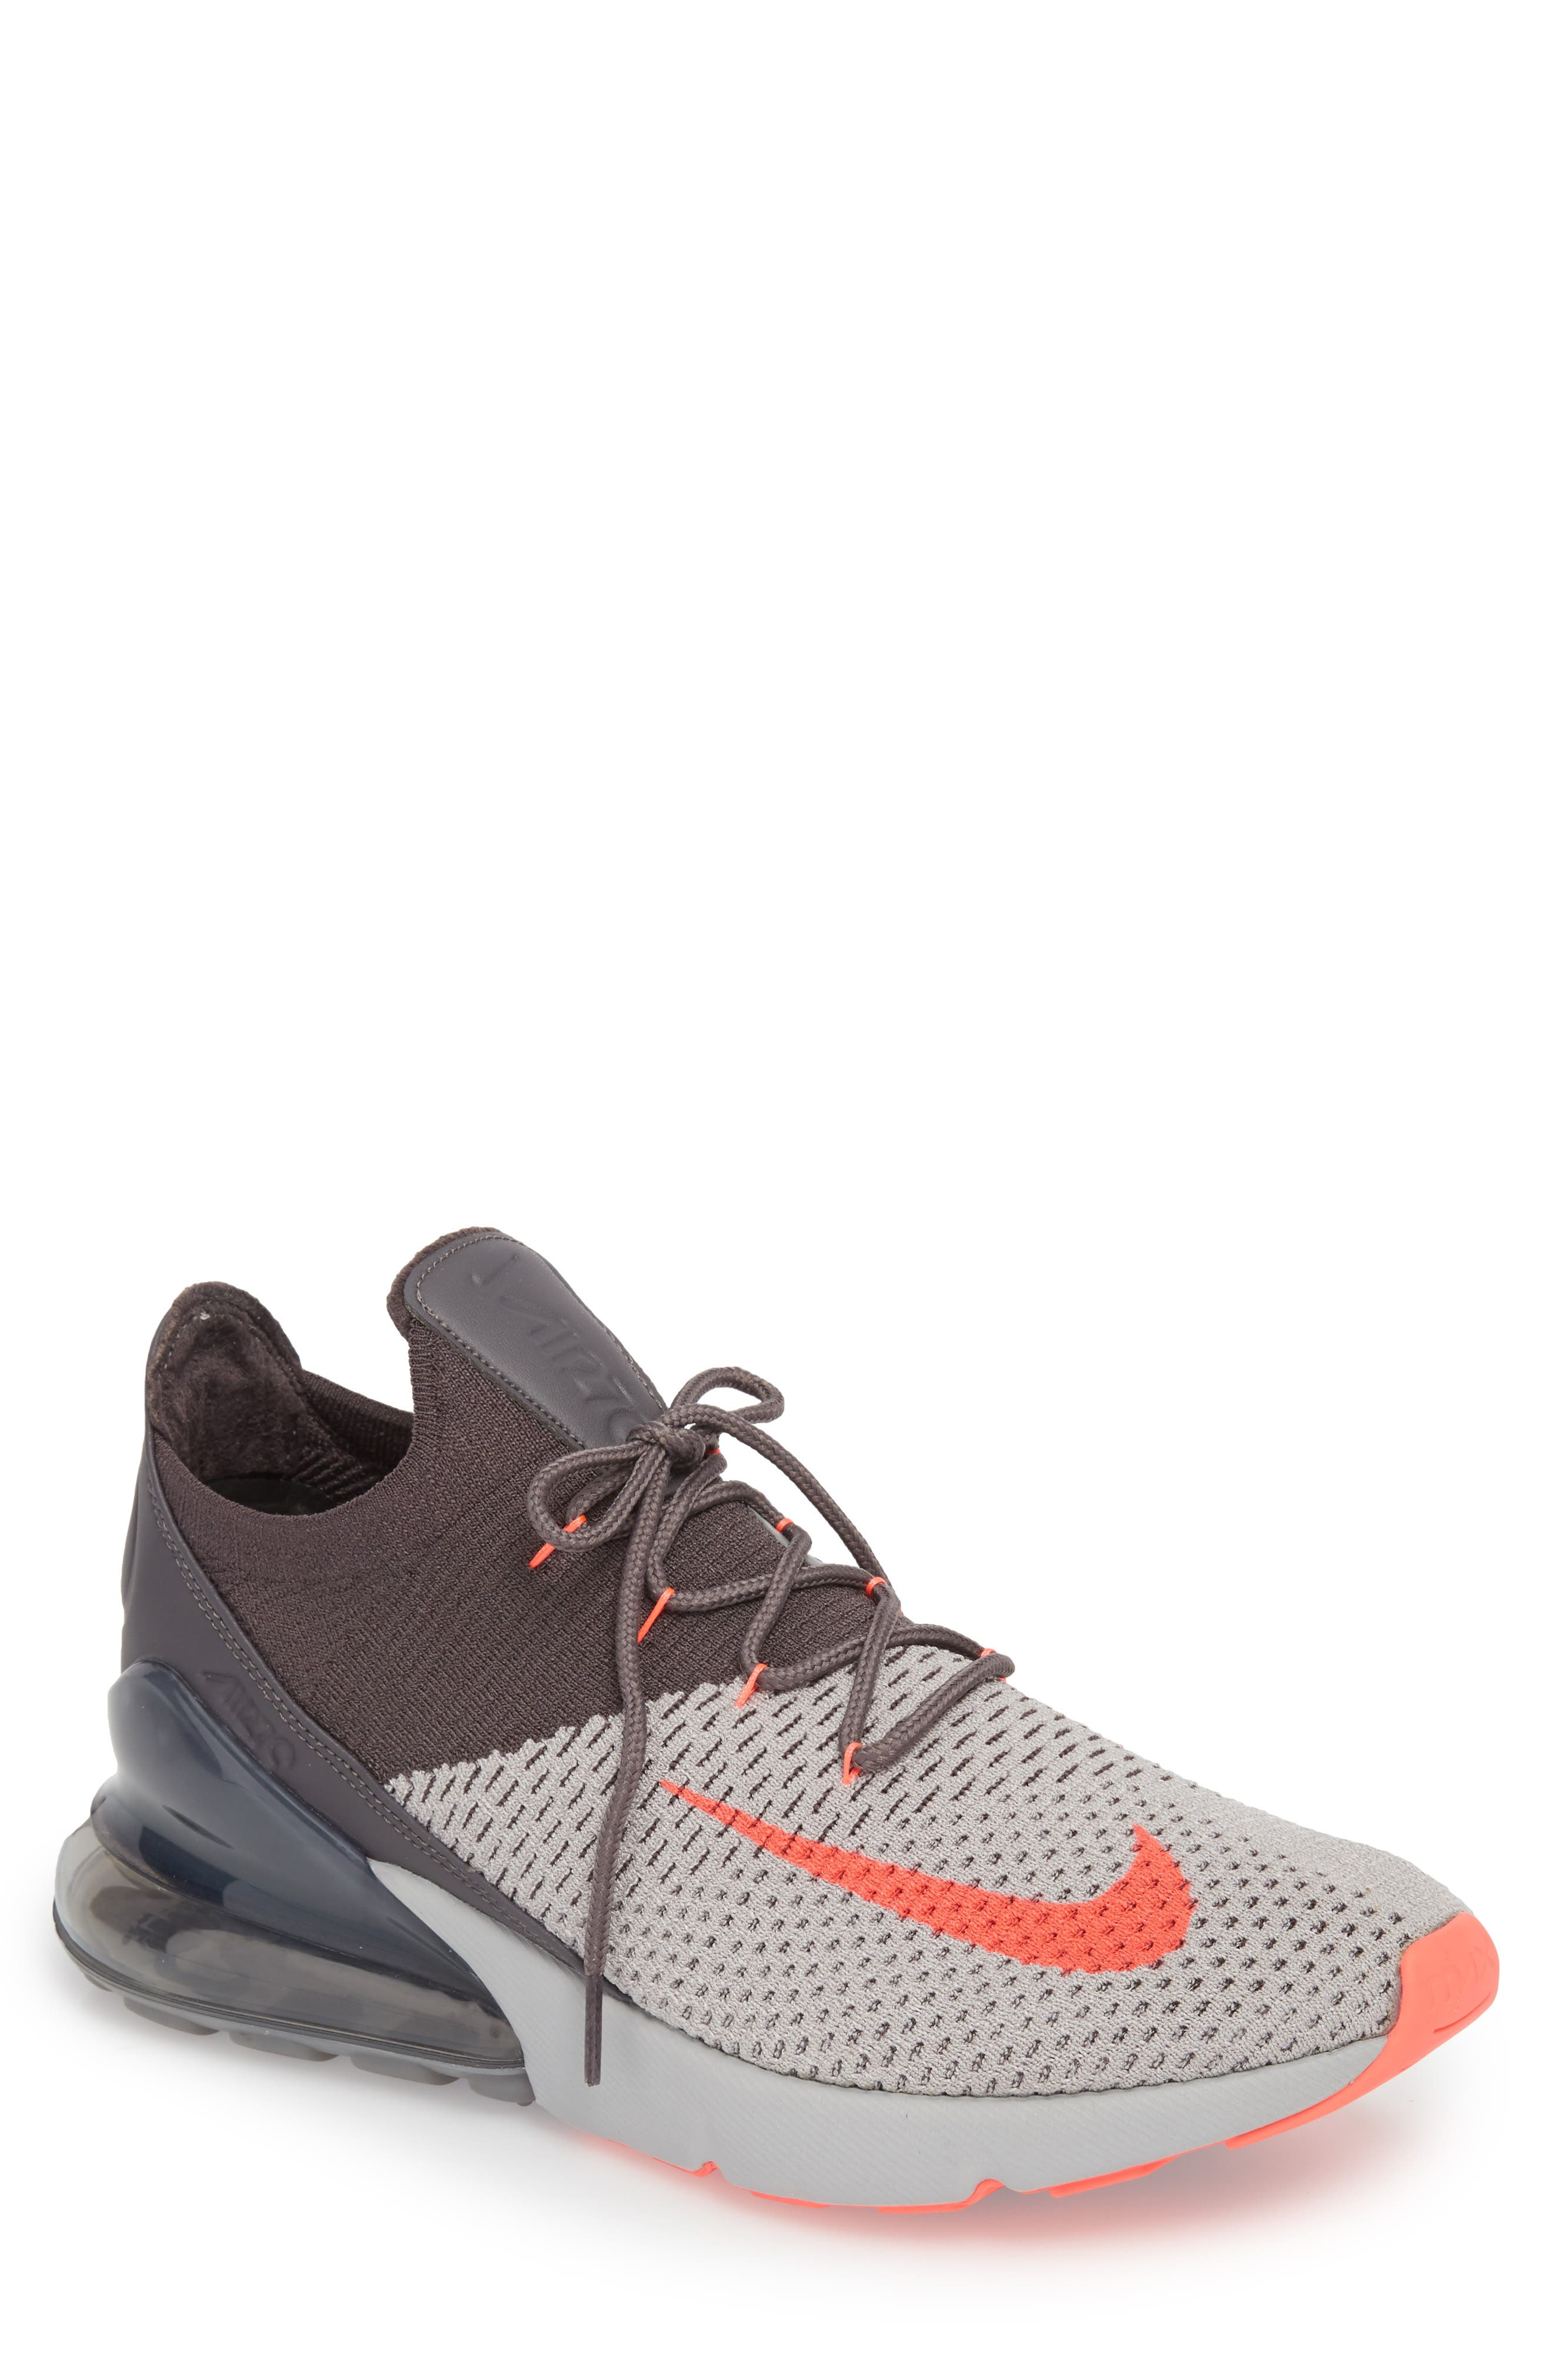 Air Max 270 Flyknit Sneaker,                             Main thumbnail 1, color,                             ATMOSPHERE GREY/ HYPER PUNCH